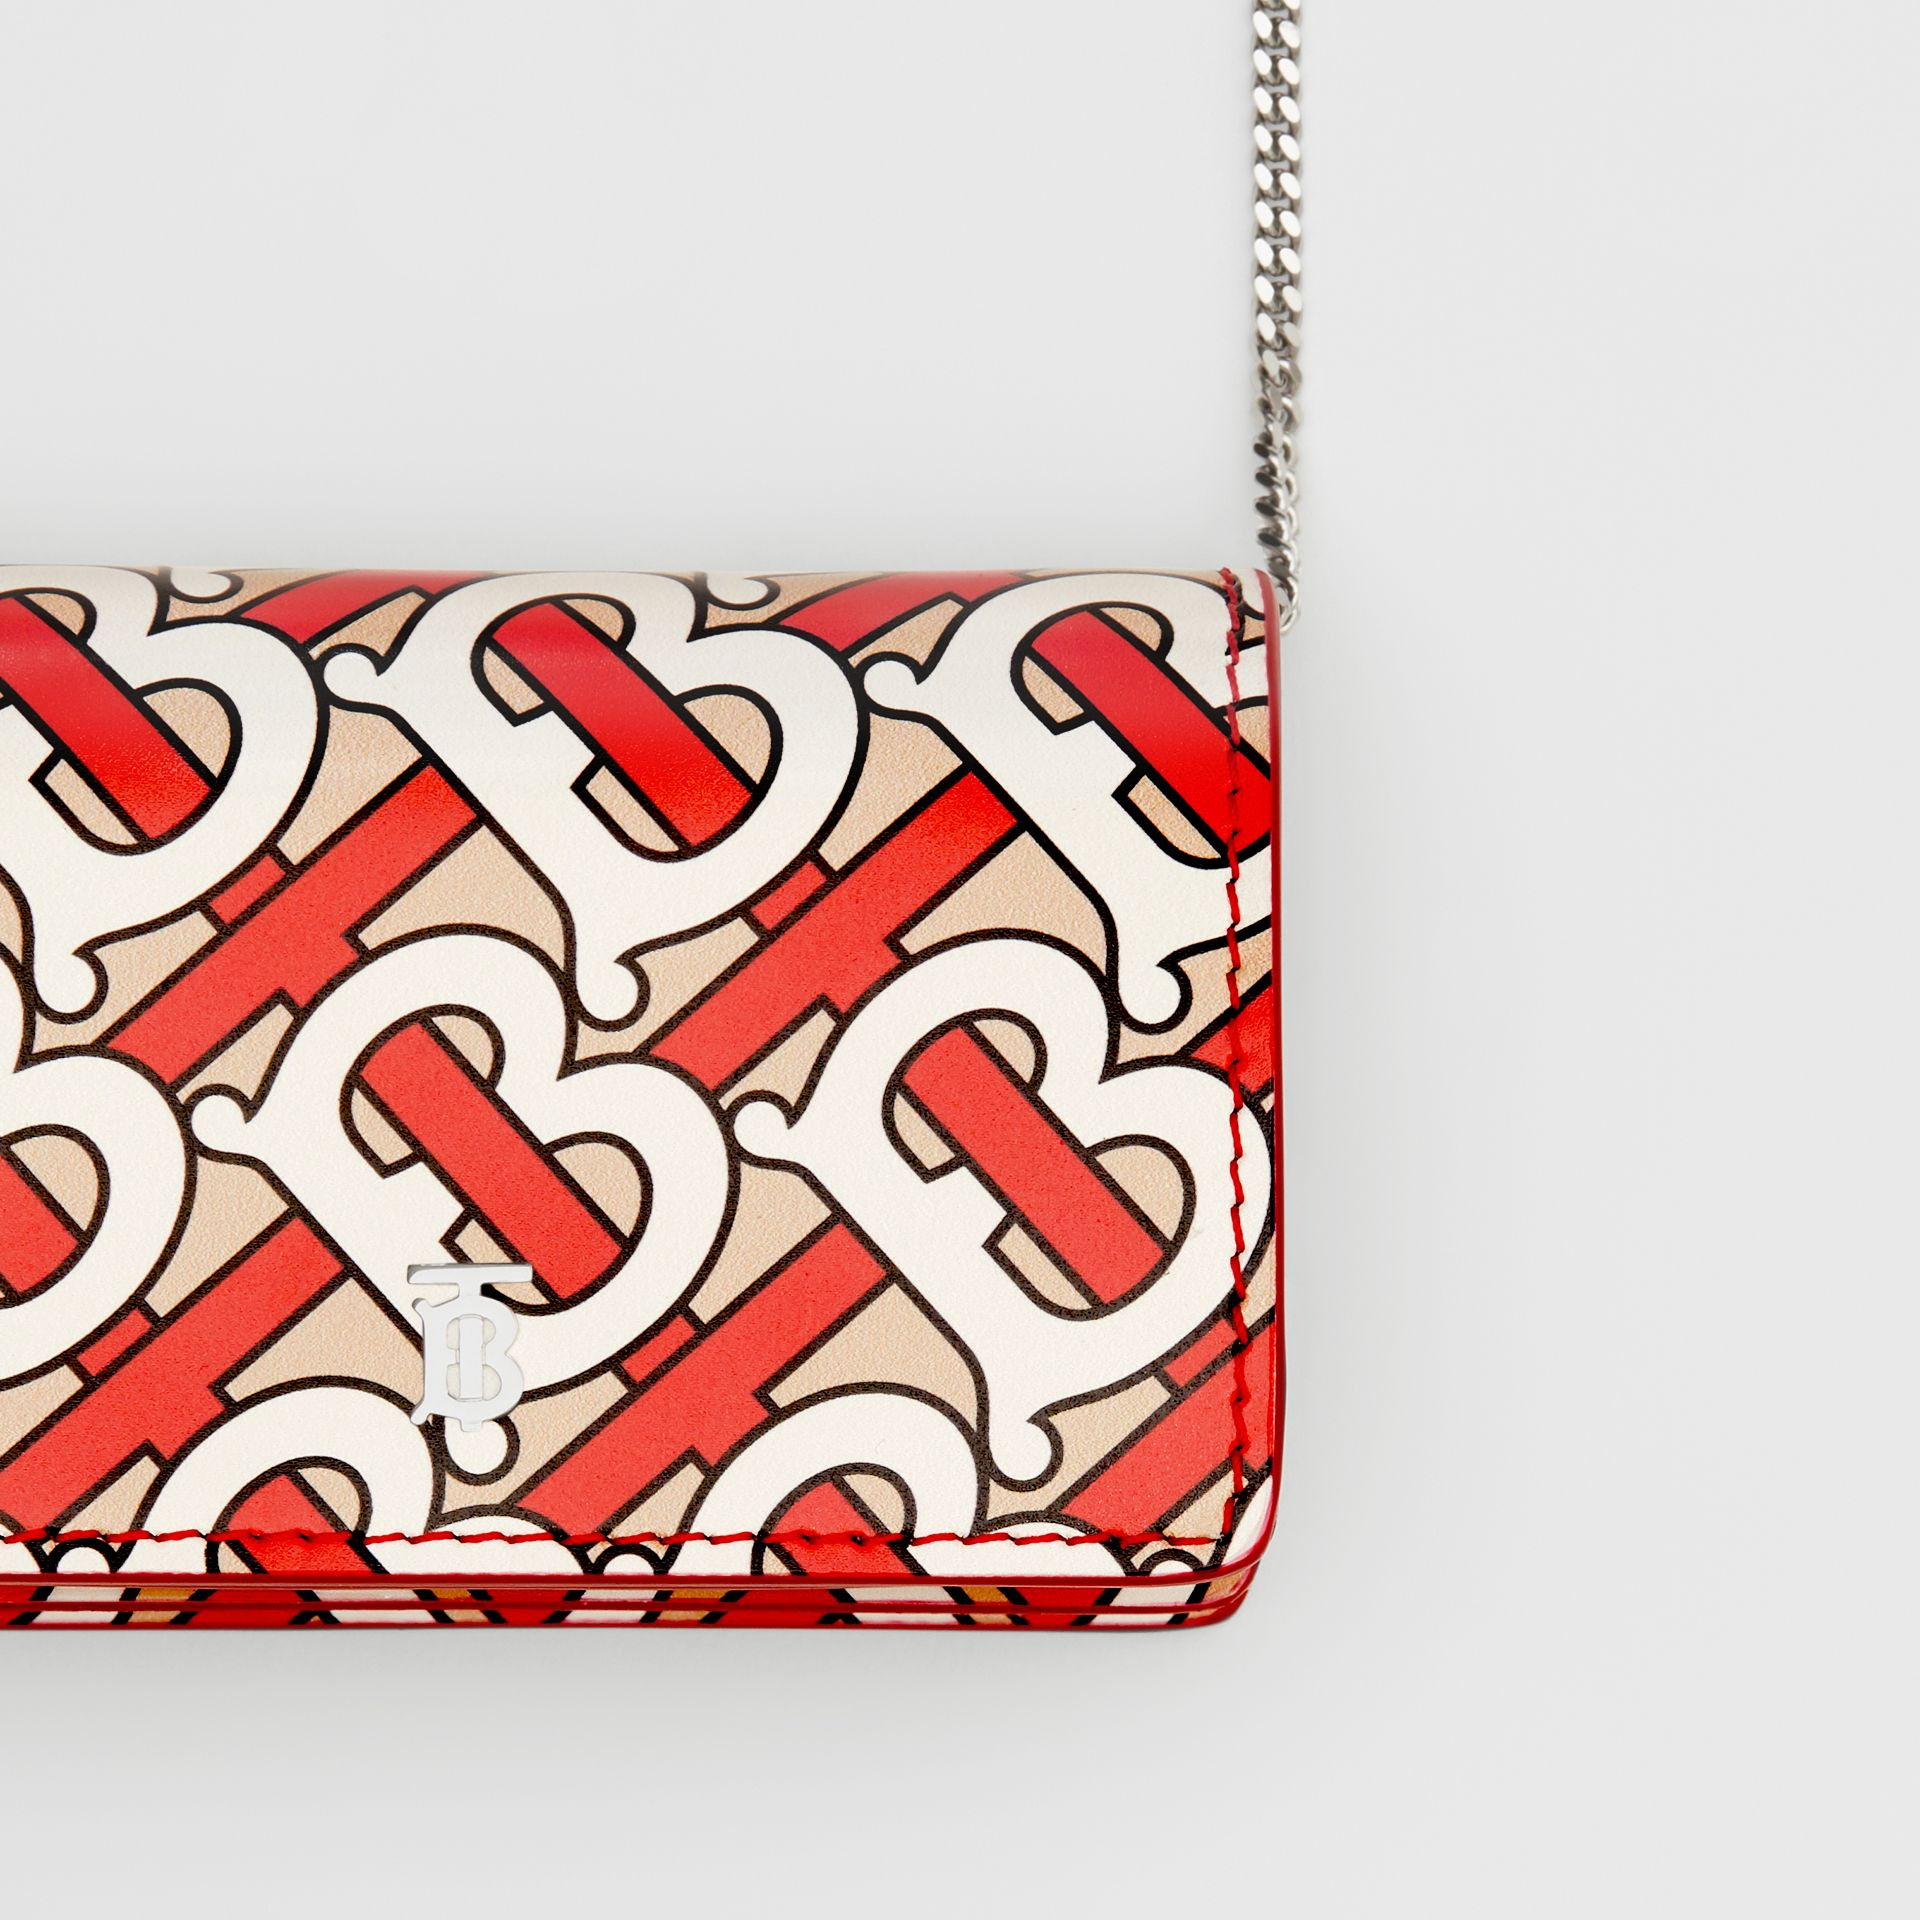 Monogram Print Card Case with Detachable Strap in Vermilion - Women | Burberry United Kingdom - gallery image 1